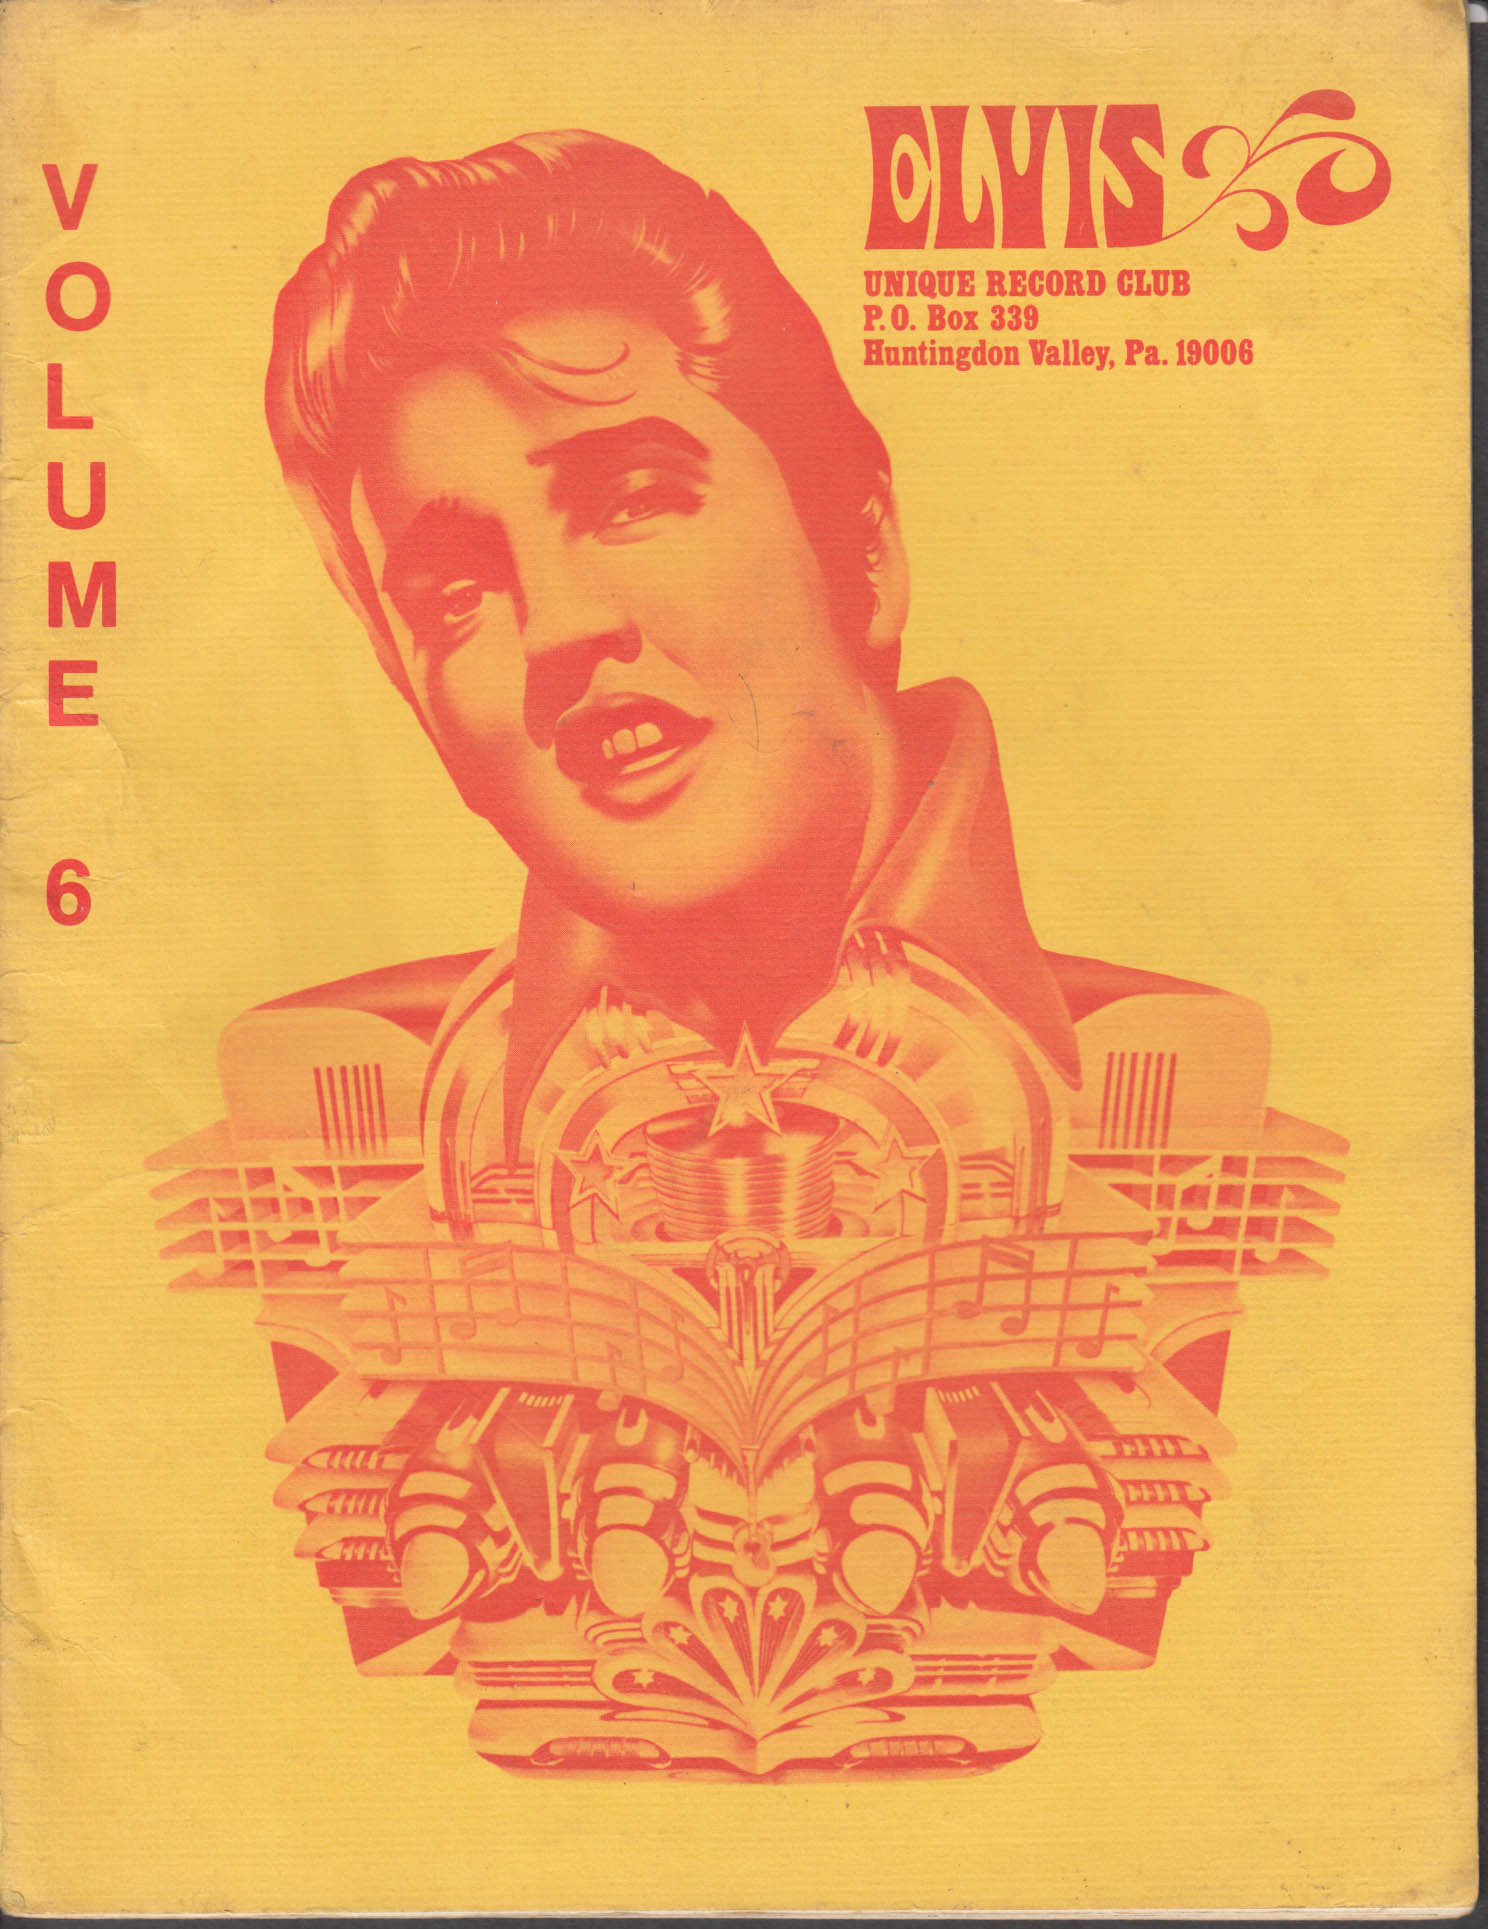 ELVIS UNIQUE RECORD CLUB V6 1977 Huntington Valley PA